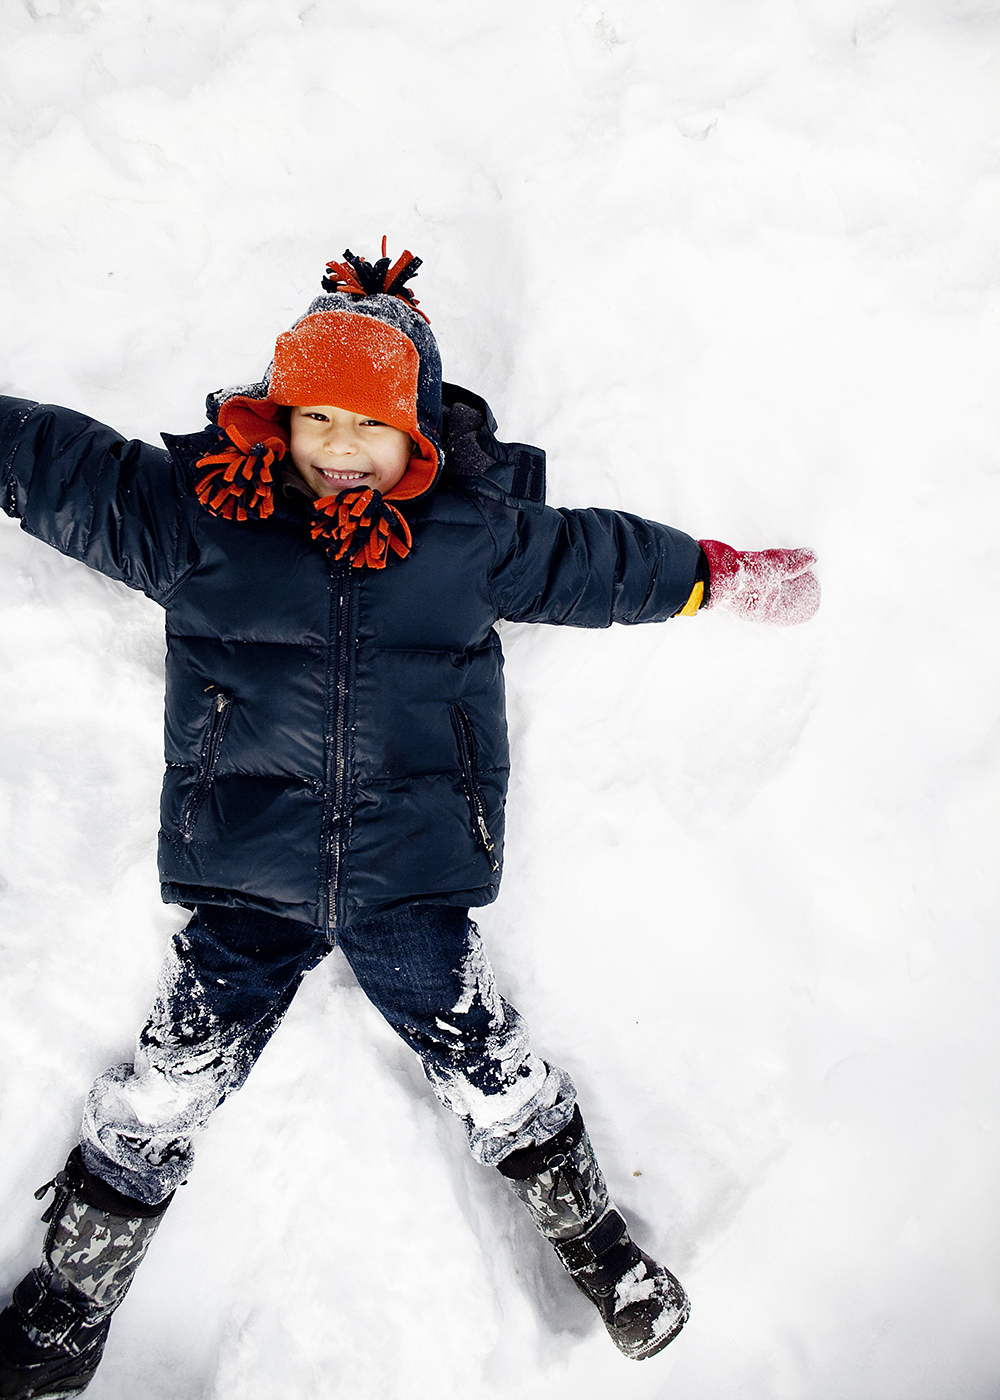 Lifestyle portrait of a boy making a snow angel